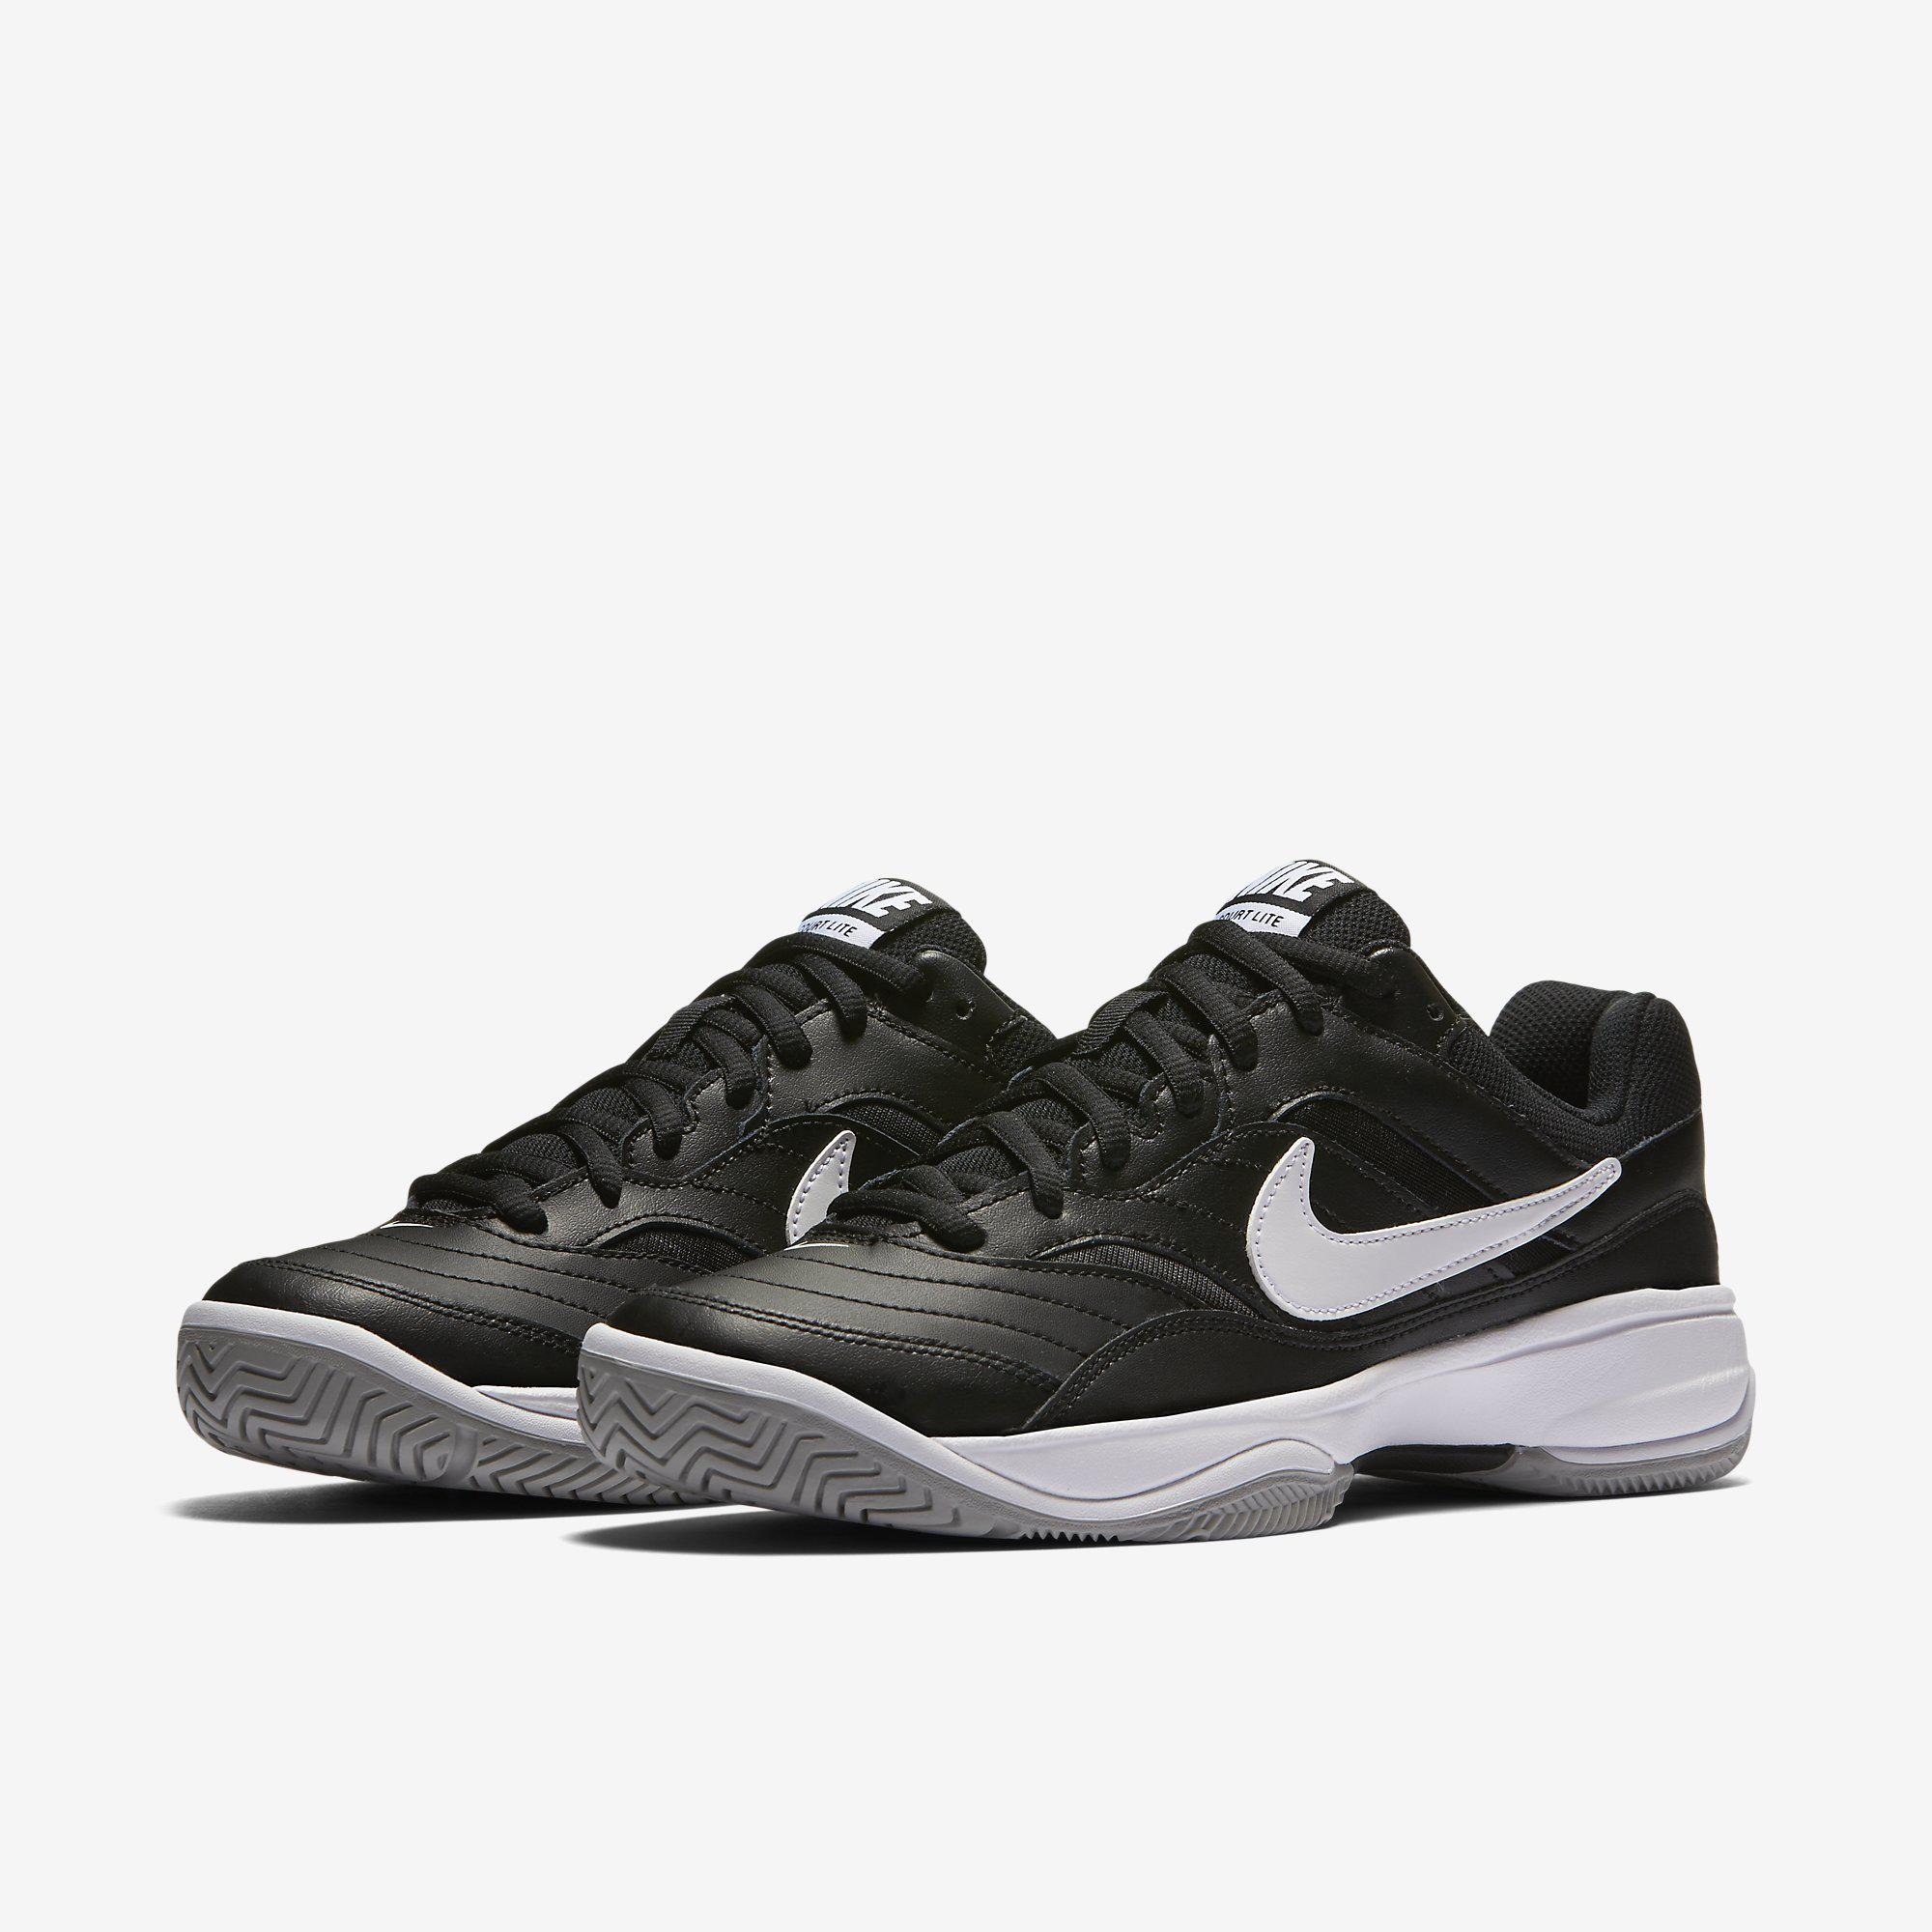 Nike Mens Court Lite Tennis Shoes - Black/White ...